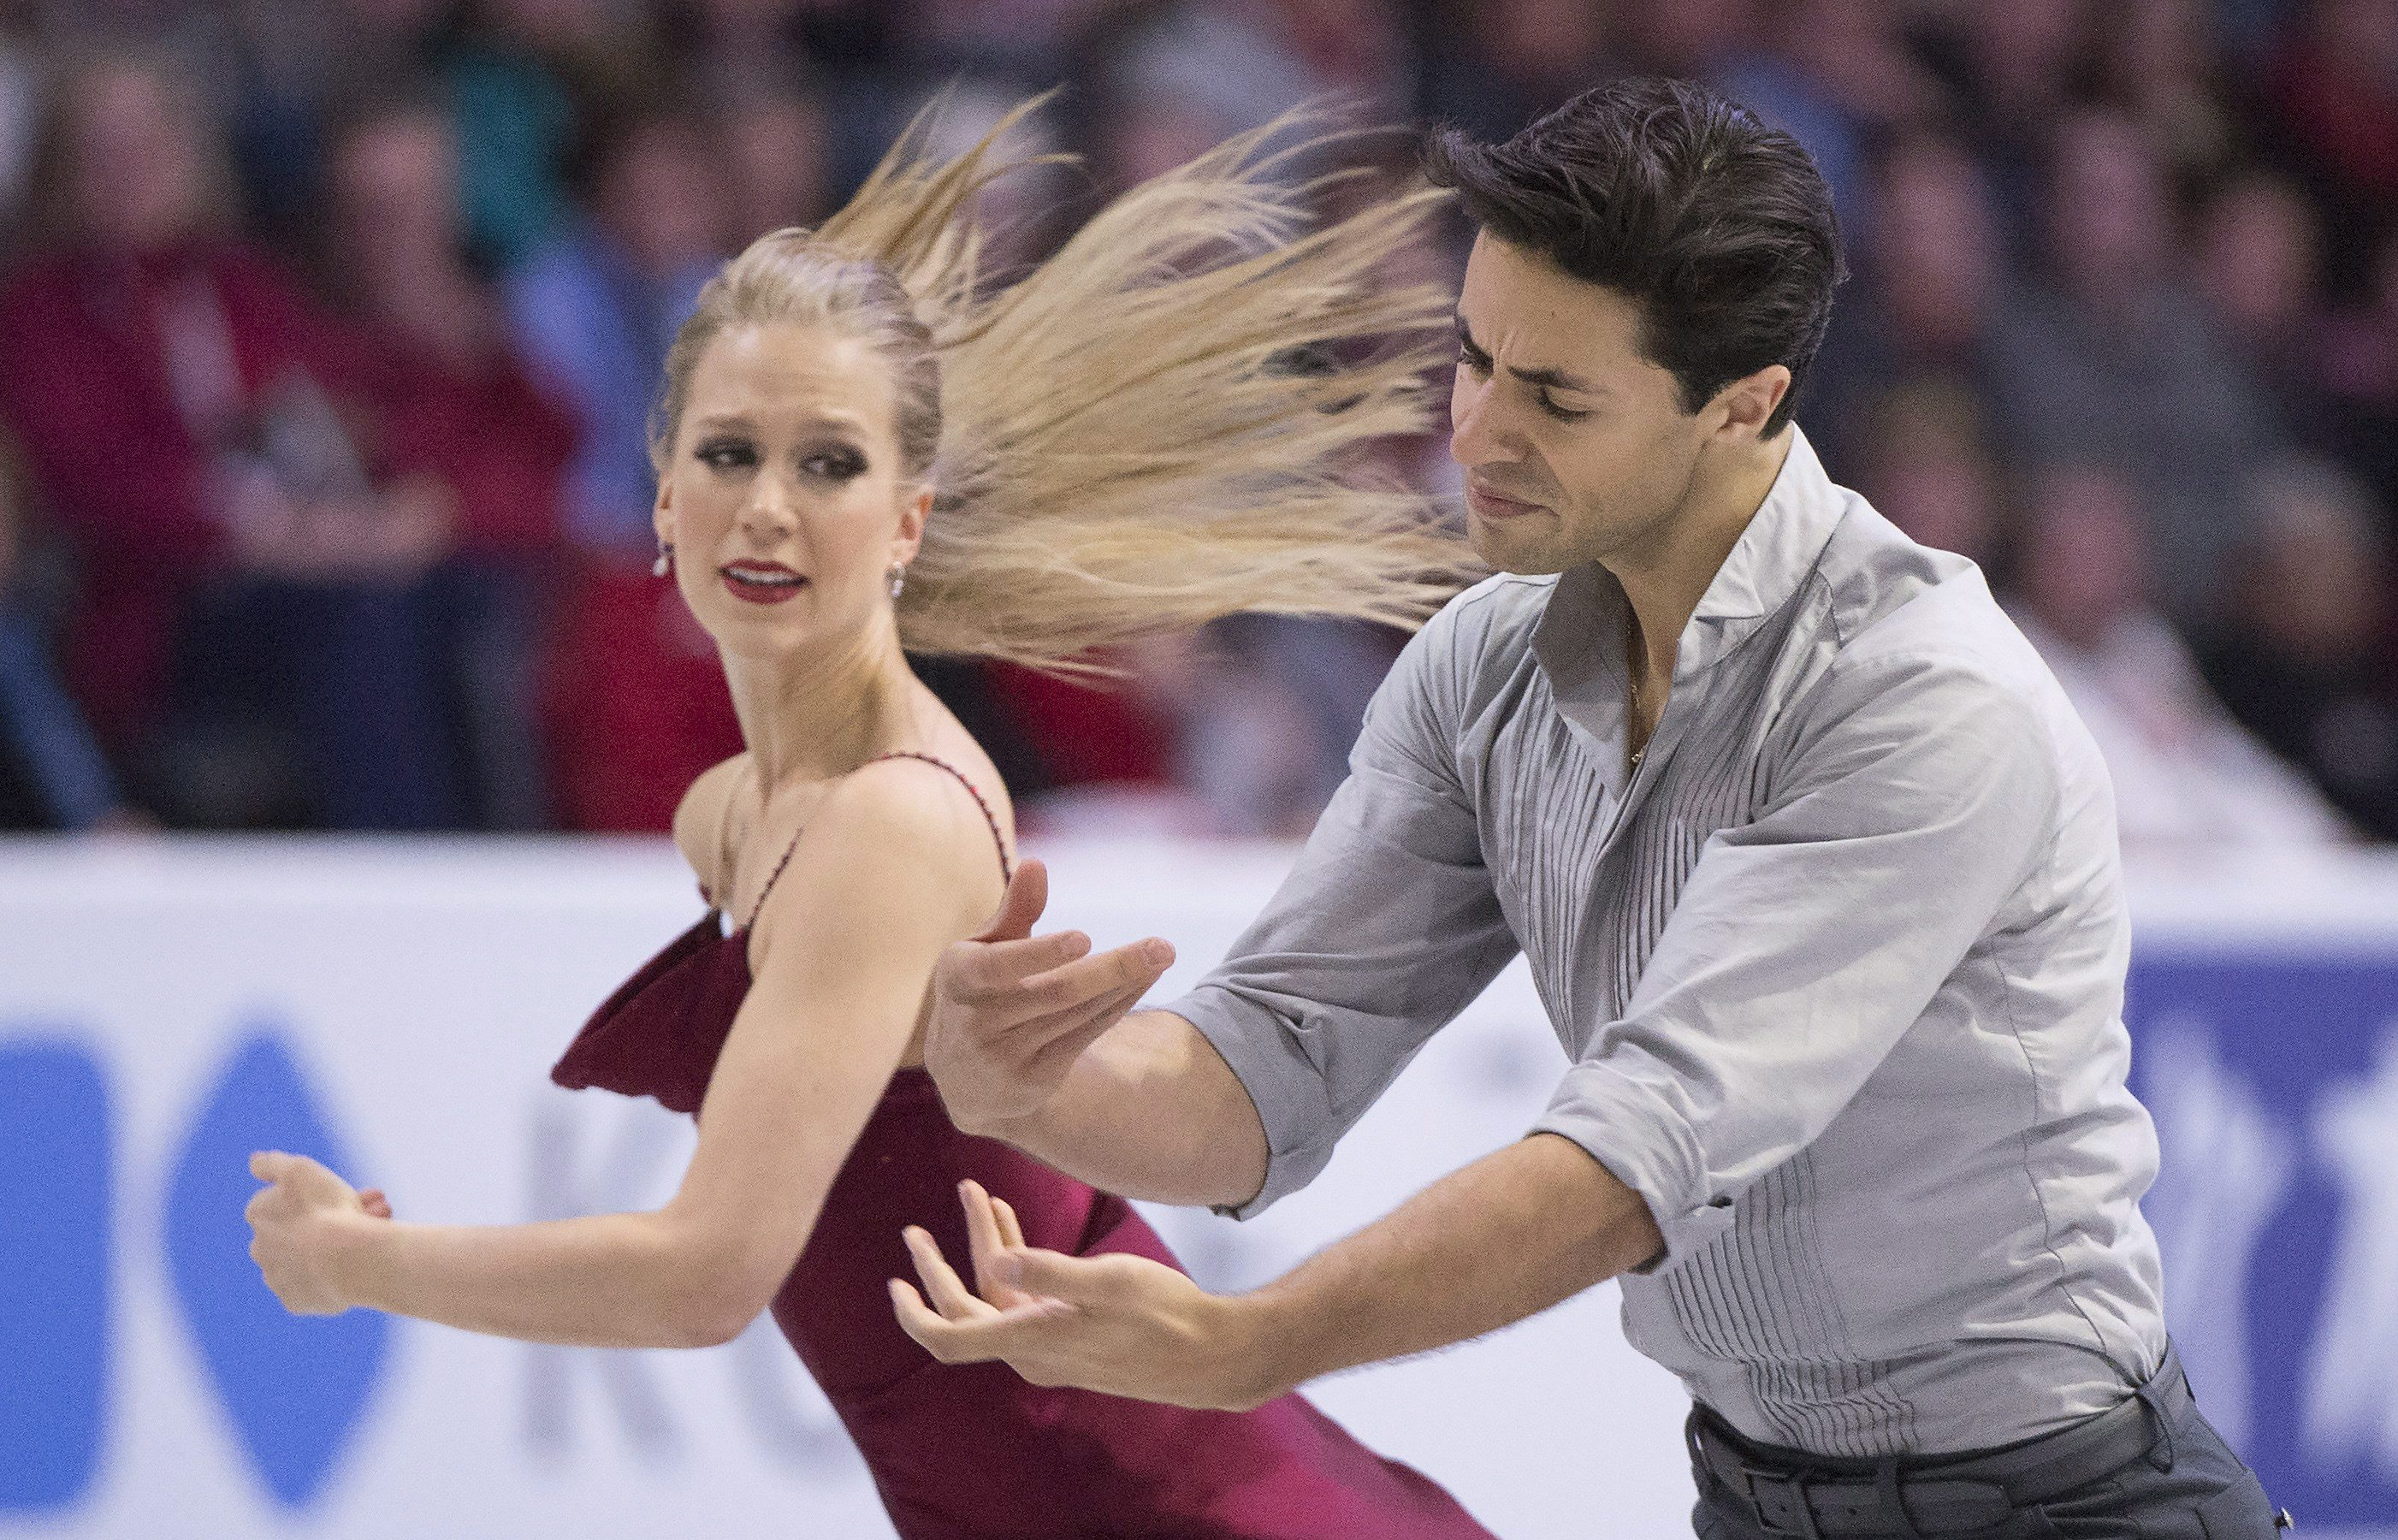 Team Canada - Kaitlyn Weaver and Andrew Poje - Skate Canada International